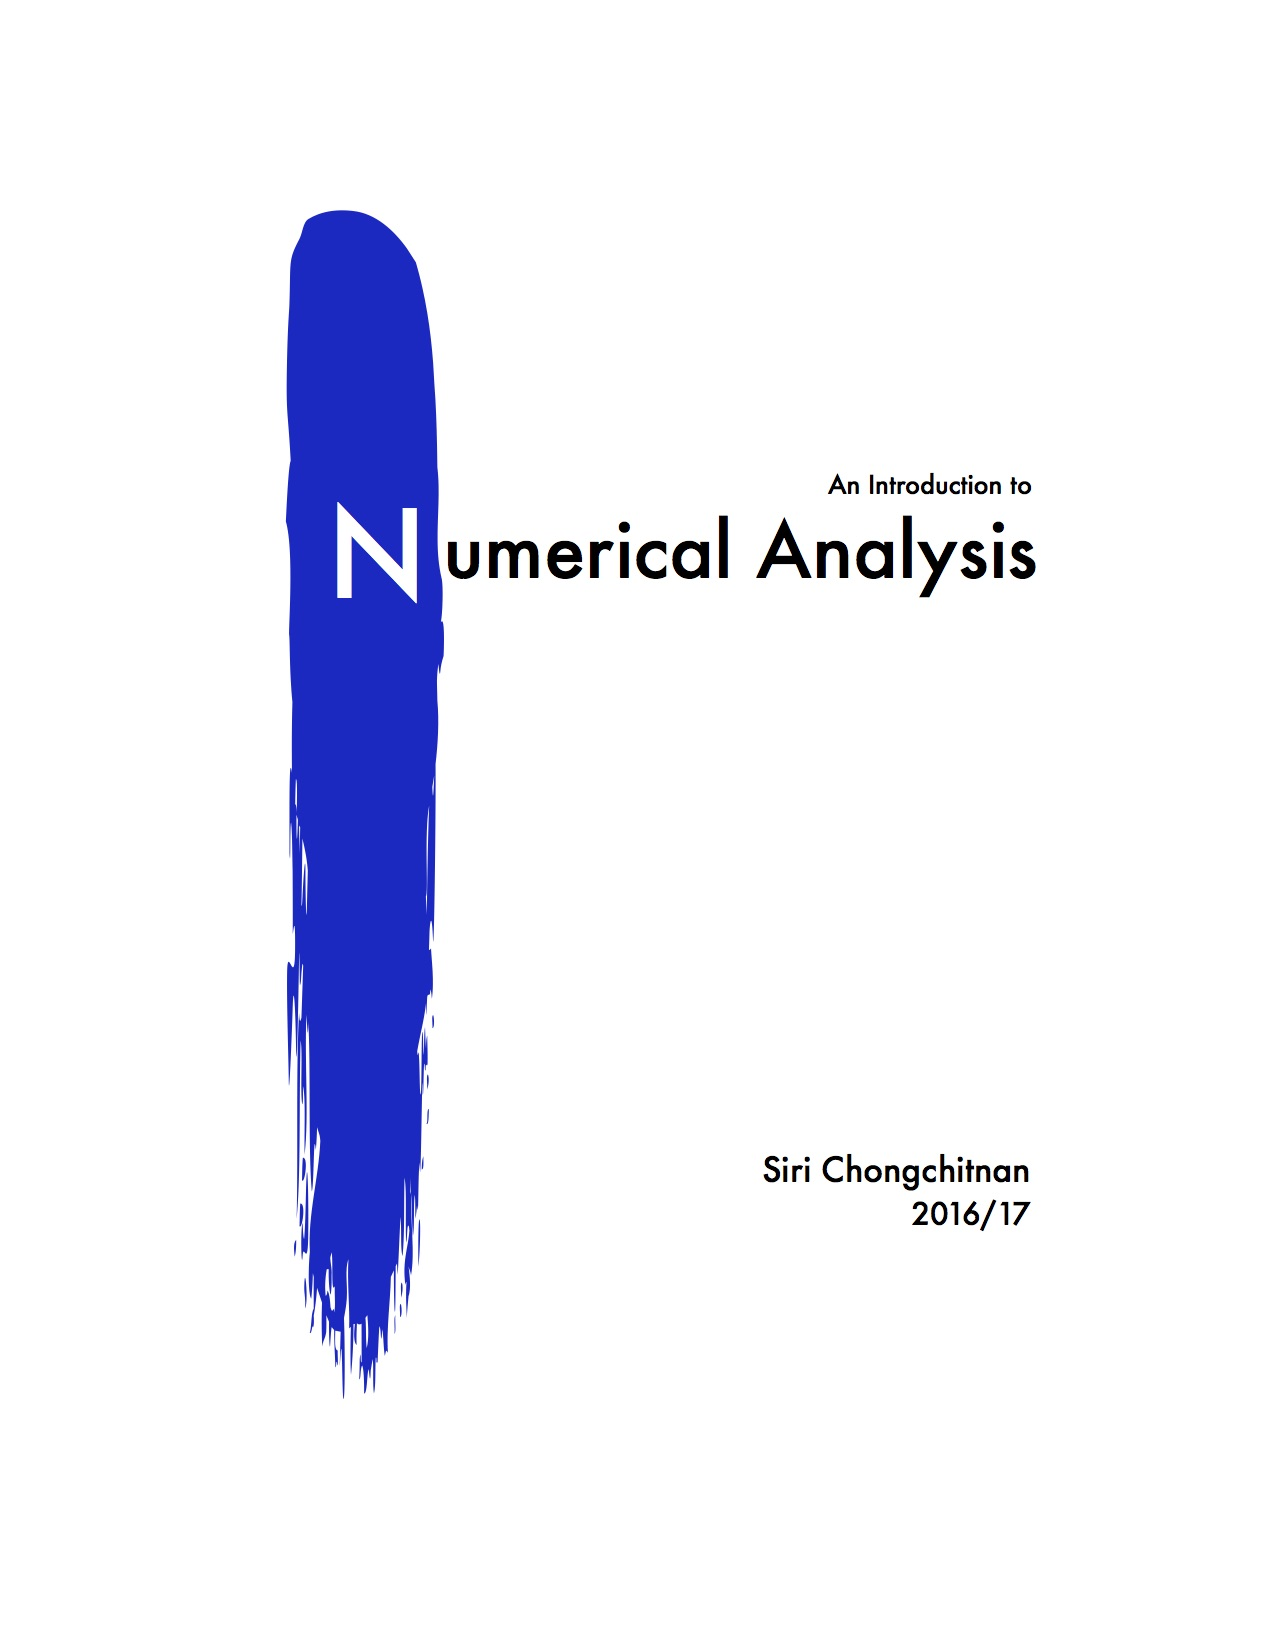 Introduction to Numerical Analysis (16/17)